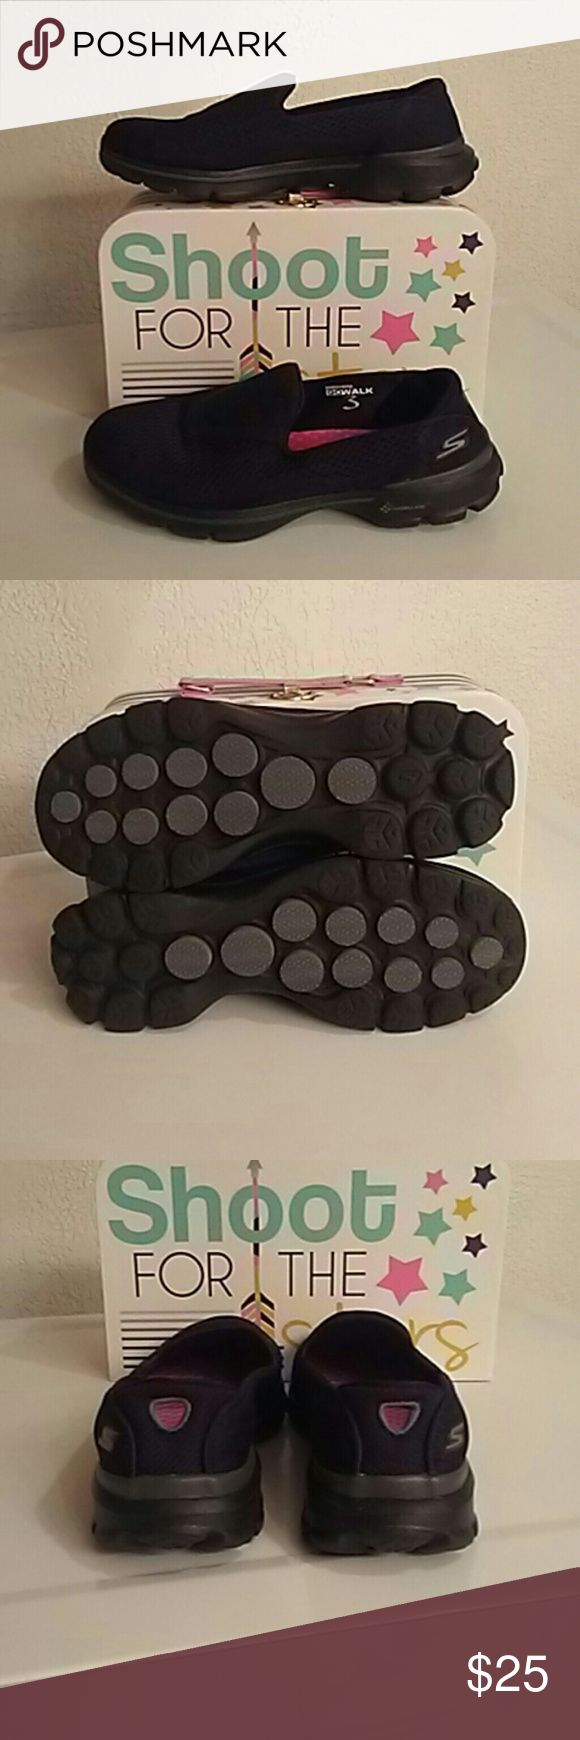 🎉FINAL SALE🎉Skechers Go Walk Skechers Go Walk with Goga mat technology excellent used condition only wore about 3 times these shoes are so comfortable for an afternoon of shopping or a walk on the beach price is firm Skechers Go Walk Shoes